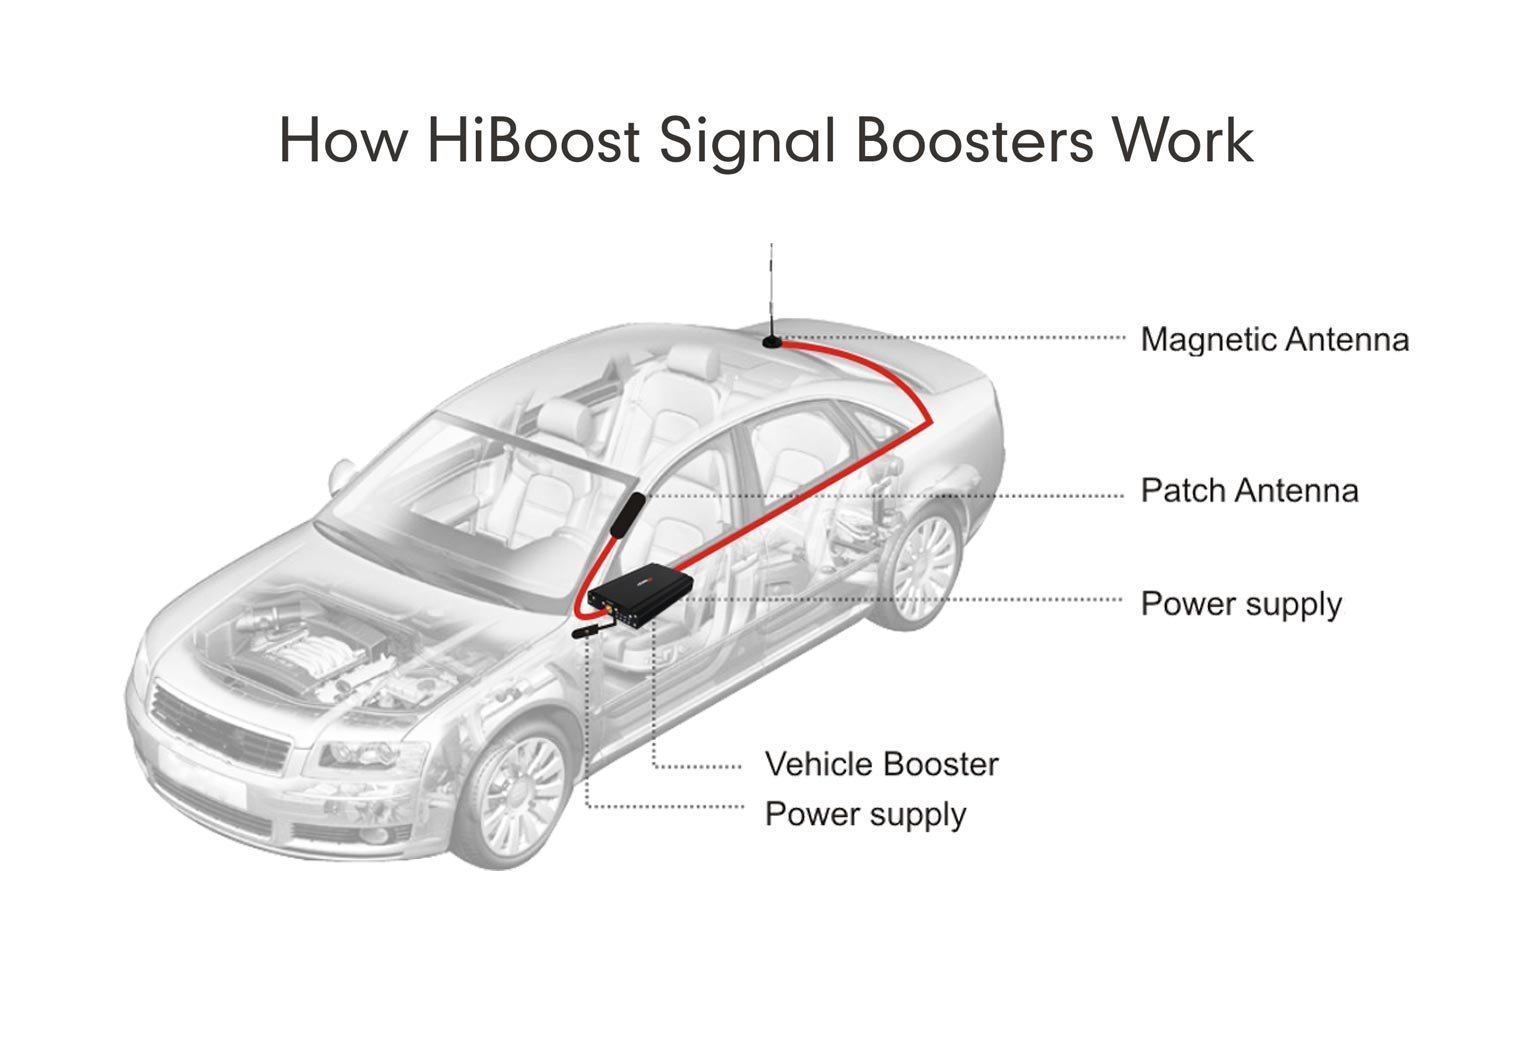 Travel 4G Cell Phone Signal Booster for Car, Truck, SUV, RV, & More - HiBoost Mobile Signal Boosters by HiBoost (Image #7)